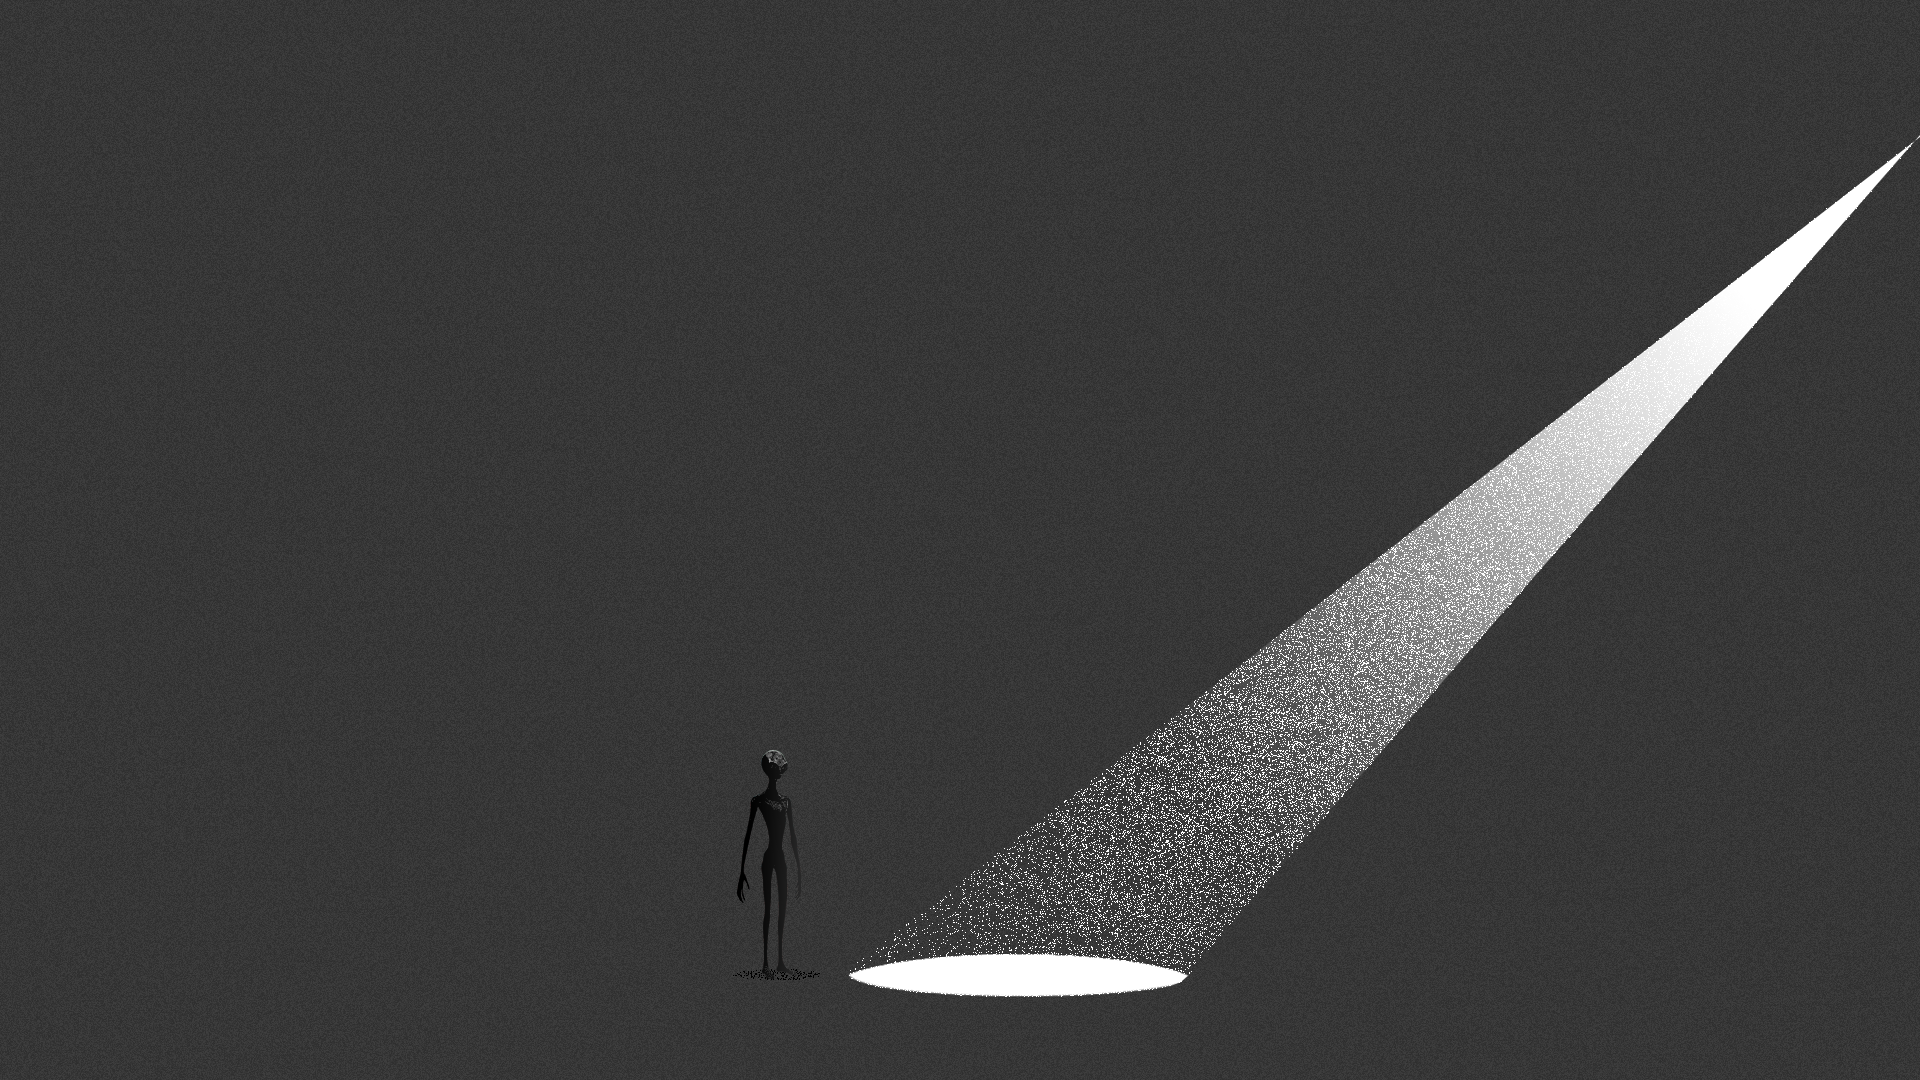 Illustration of a small spotlight lighting an empty area, a small alien is off to the side of the light.